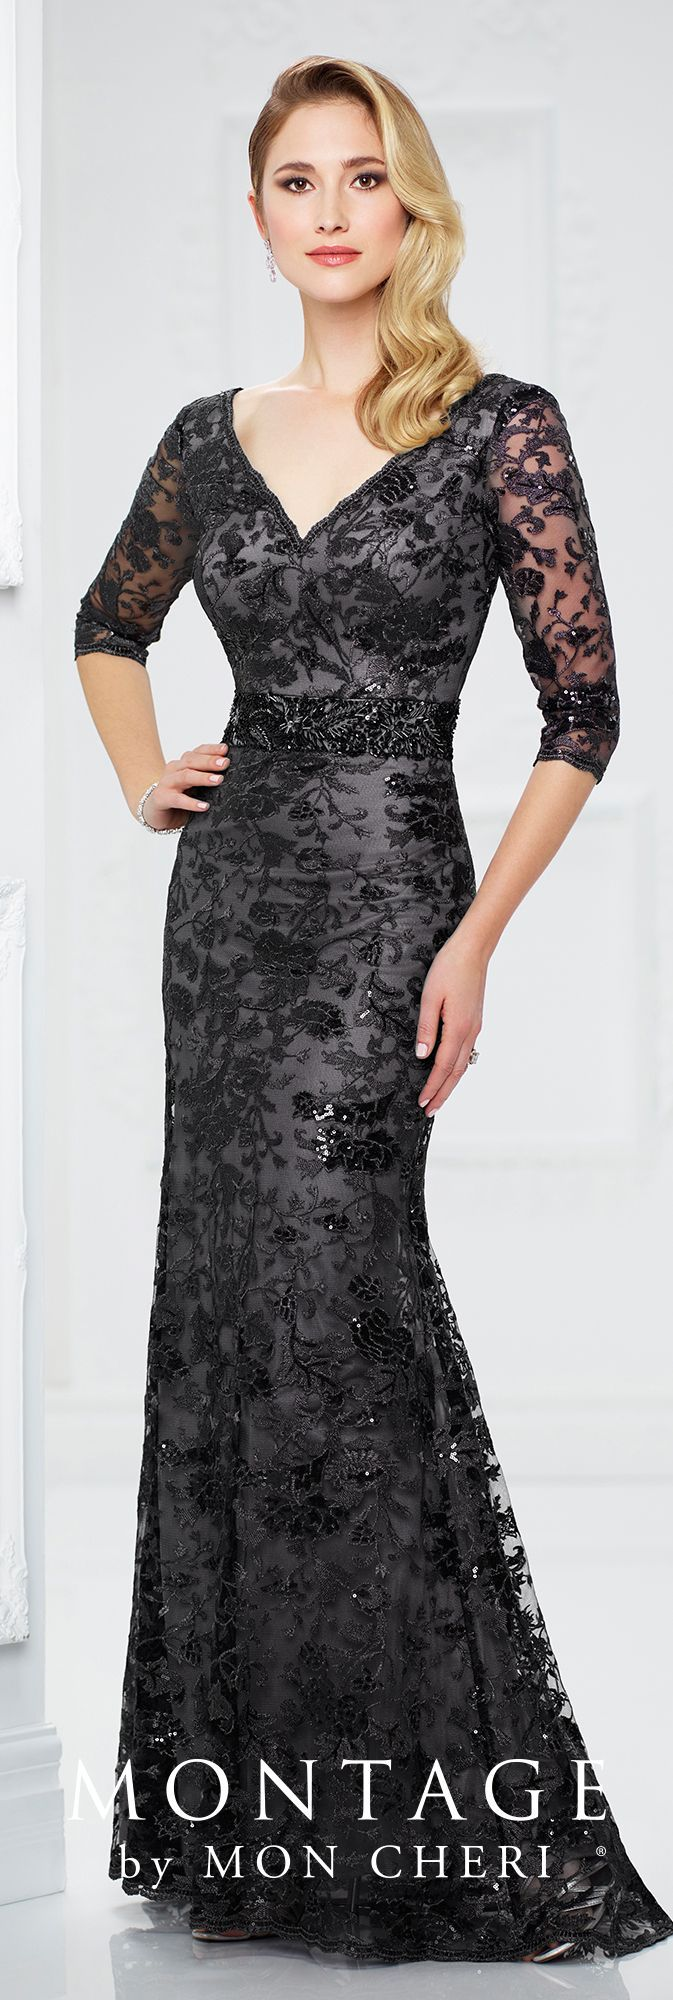 Best 10+ Black evening gowns ideas on Pinterest | Evening gowns ...